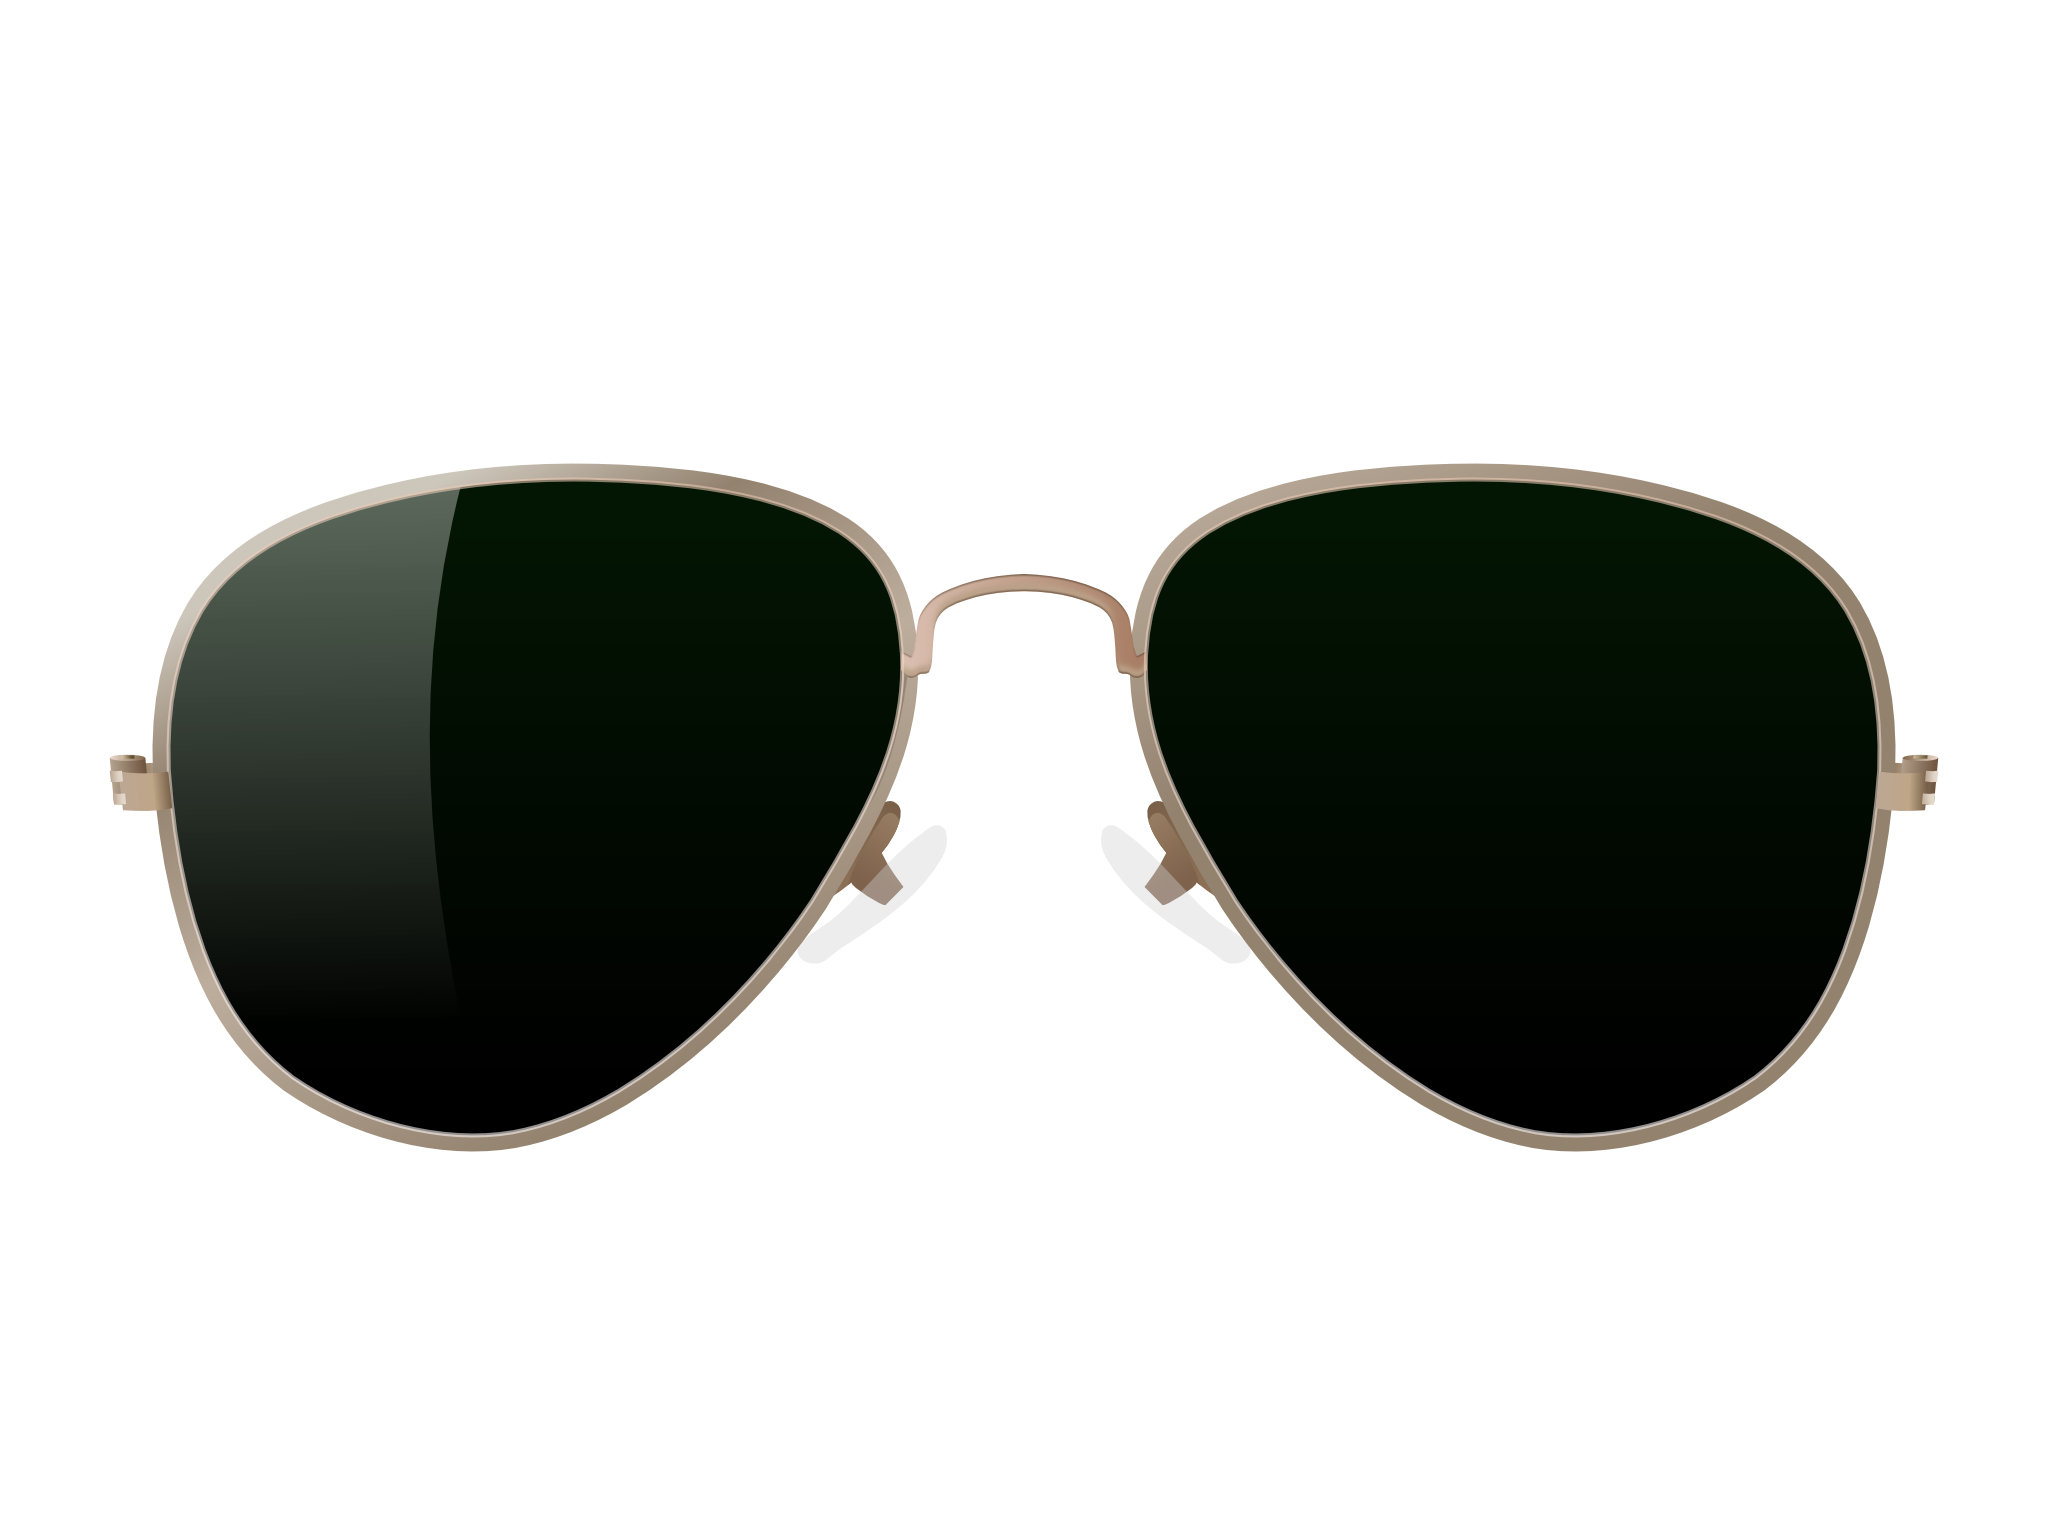 Branded Sunglasses Factory has been in the sunglasses retail business for many years now. We operate almost 40 stores worlwide around asia.